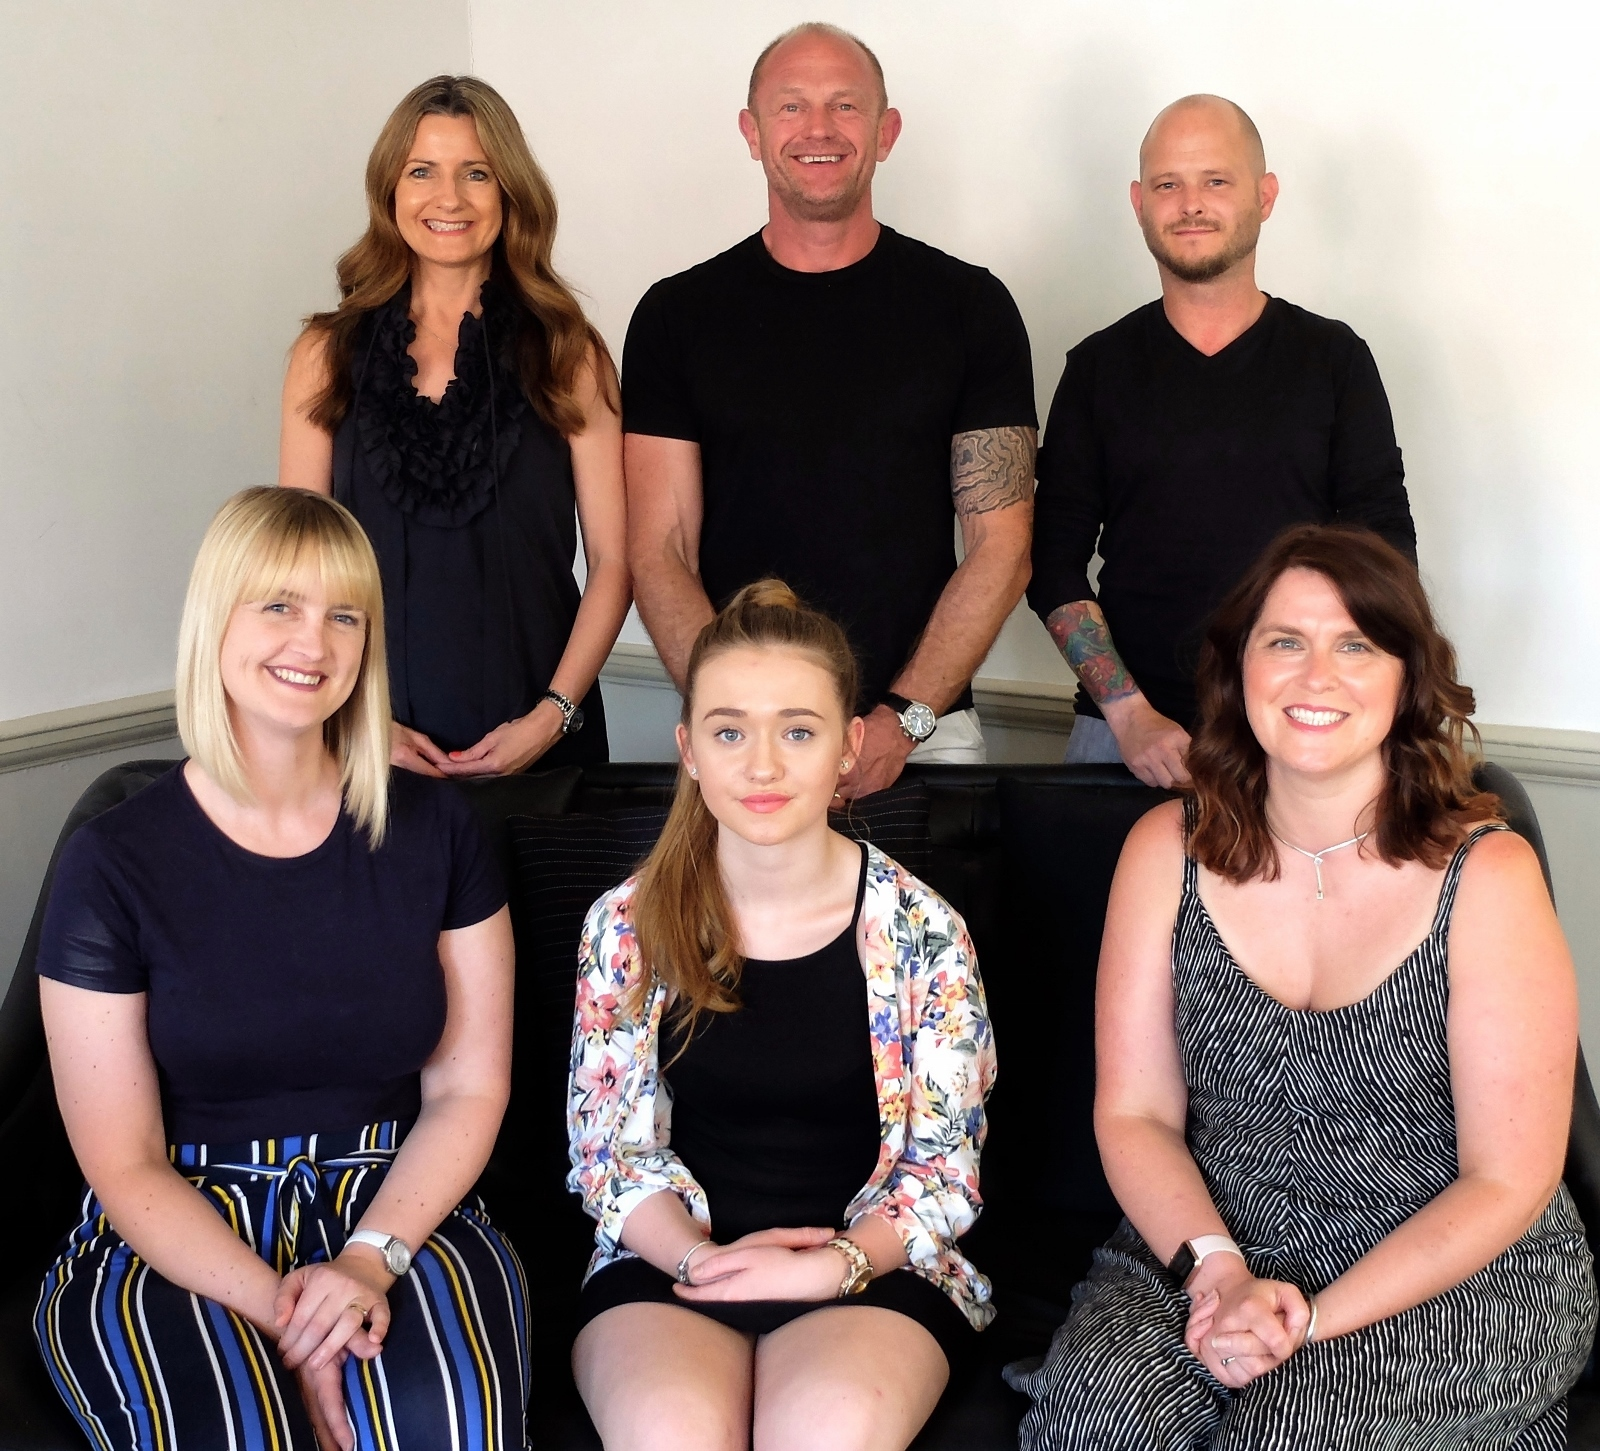 (Back L-R) Allison and Nick Ford & Adrian Arnold. (Front L-R) Zoe Tilley, Chloe Beard and Helena Williams